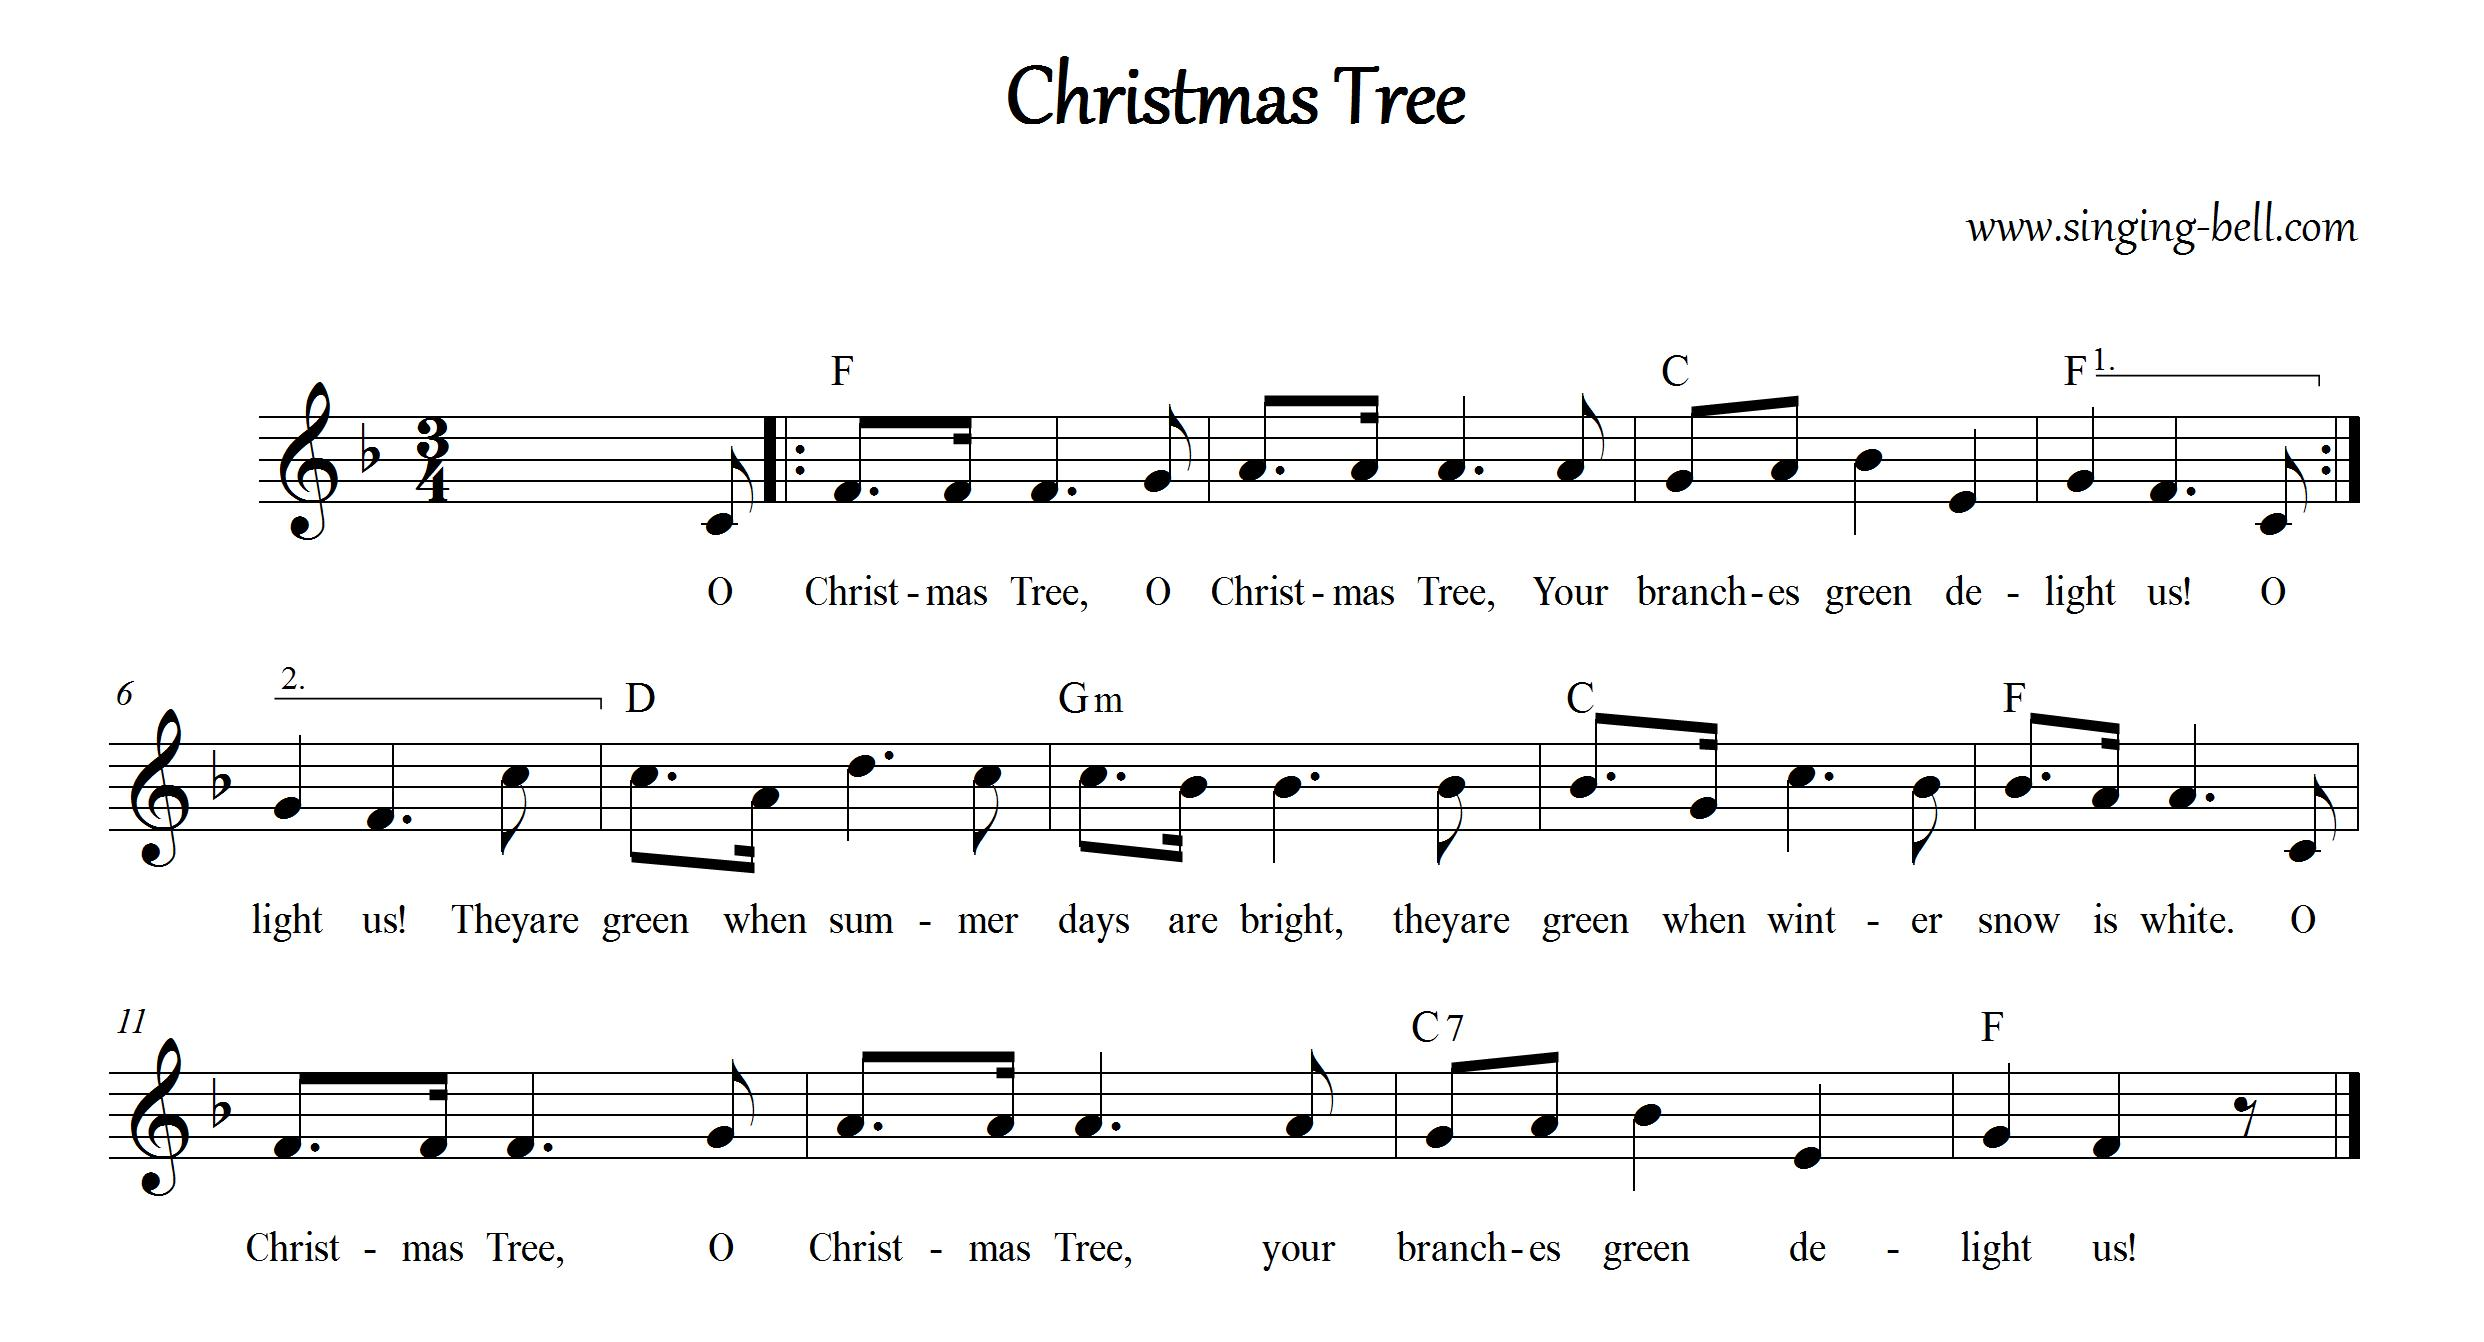 Lied Oh Tannenbaum Text.O Christmas Tree O Tannenbaum Free Christmas Carols